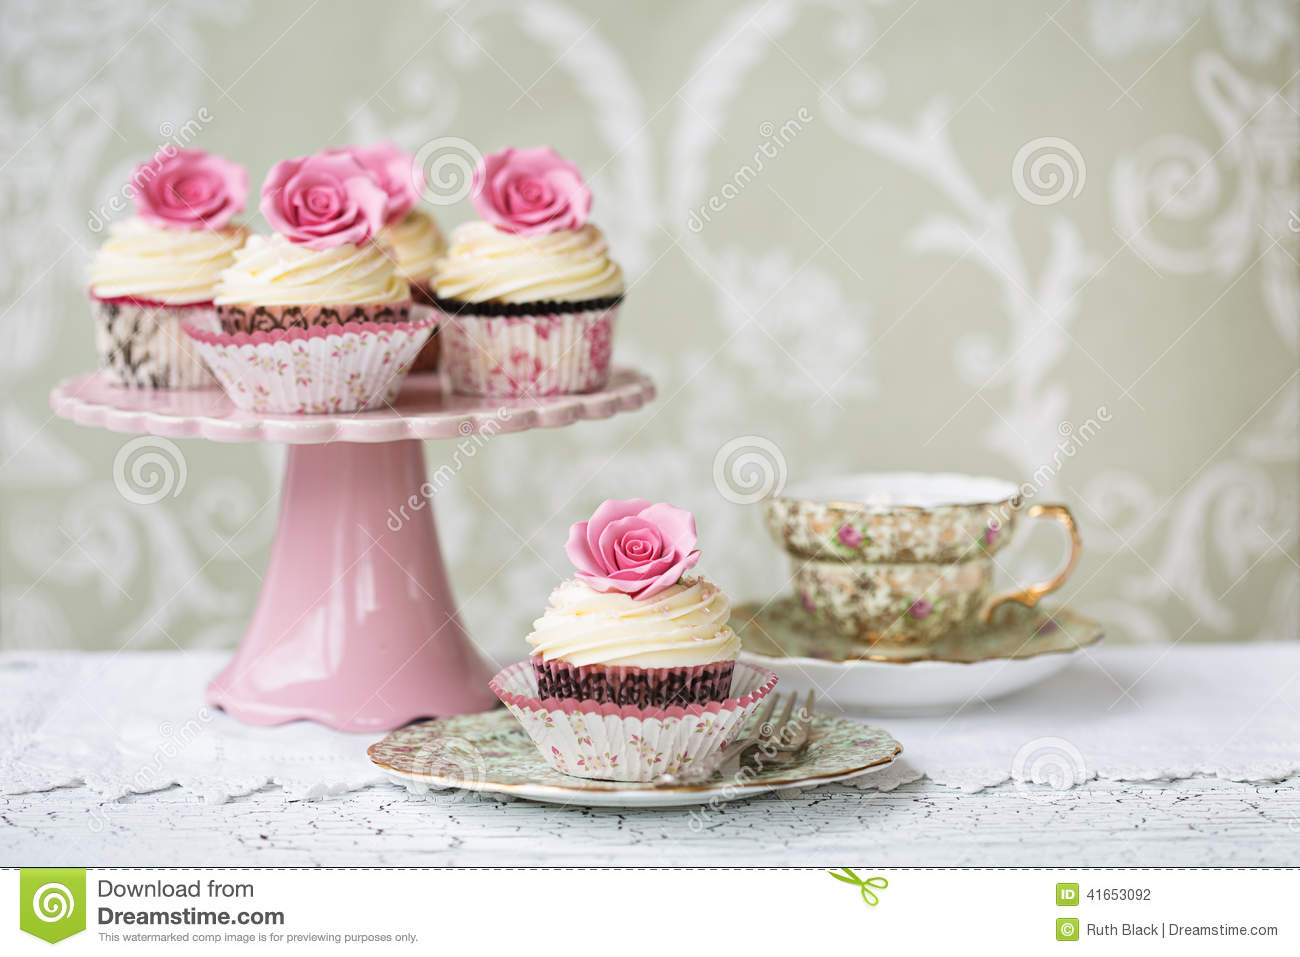 Afternoon Tea With Rose Cupcakes Stock Photo Image 41653092